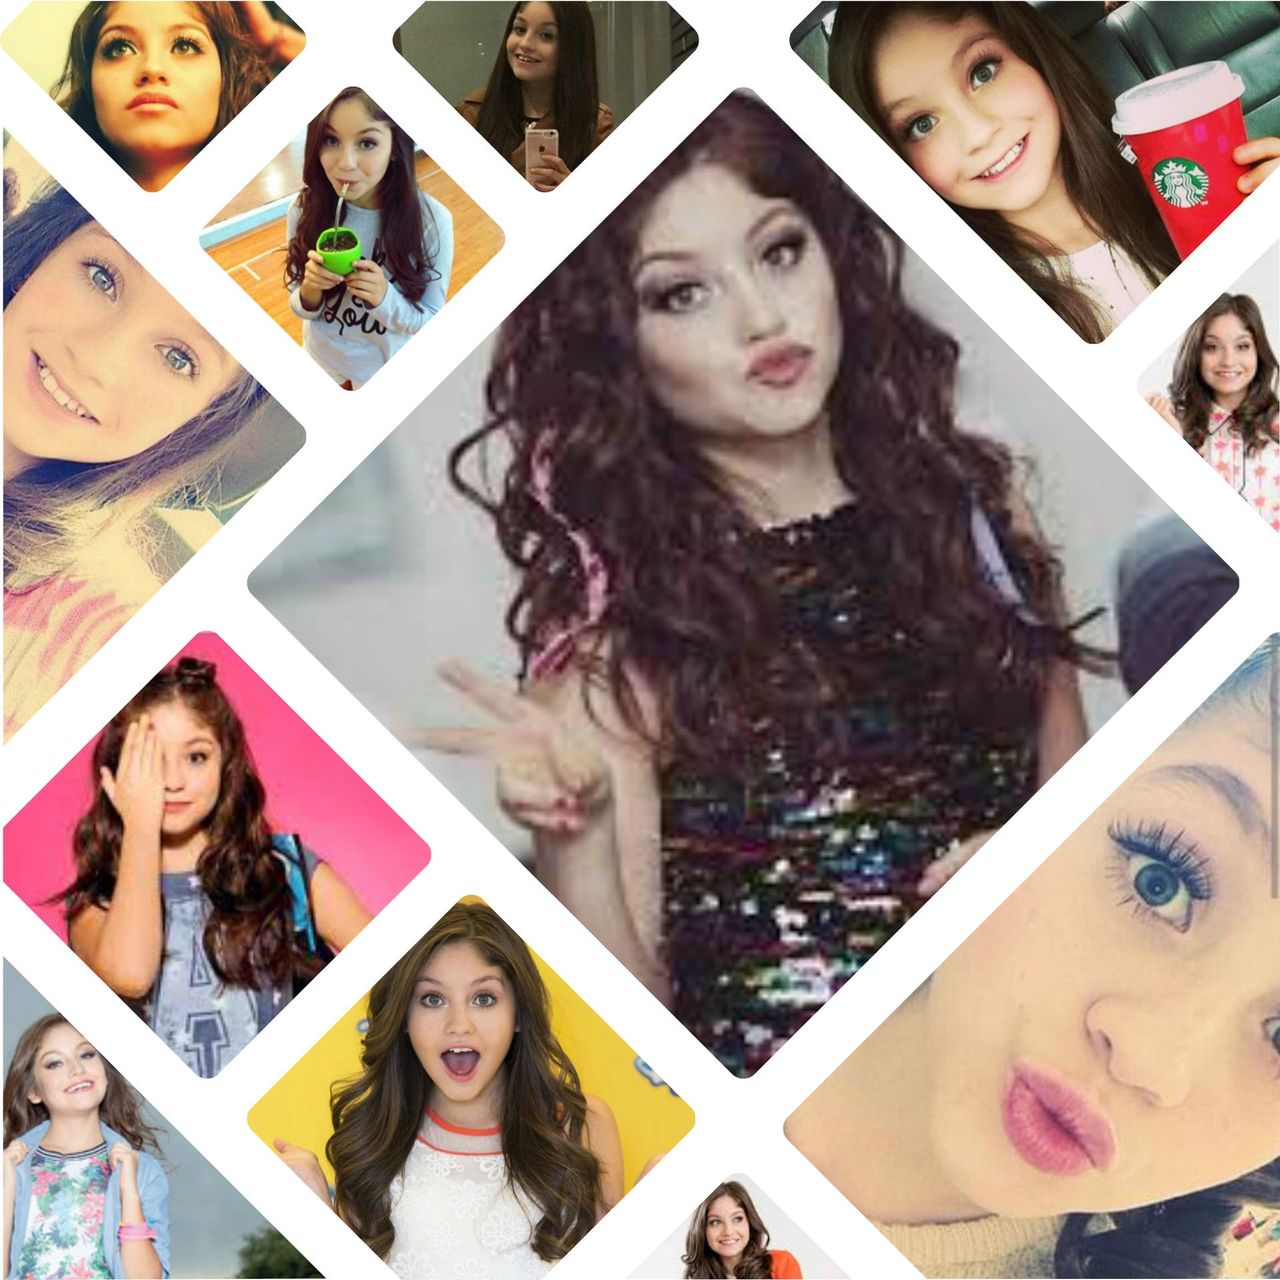 memes soy luna xd 18 collages soy luna wattpad. Black Bedroom Furniture Sets. Home Design Ideas